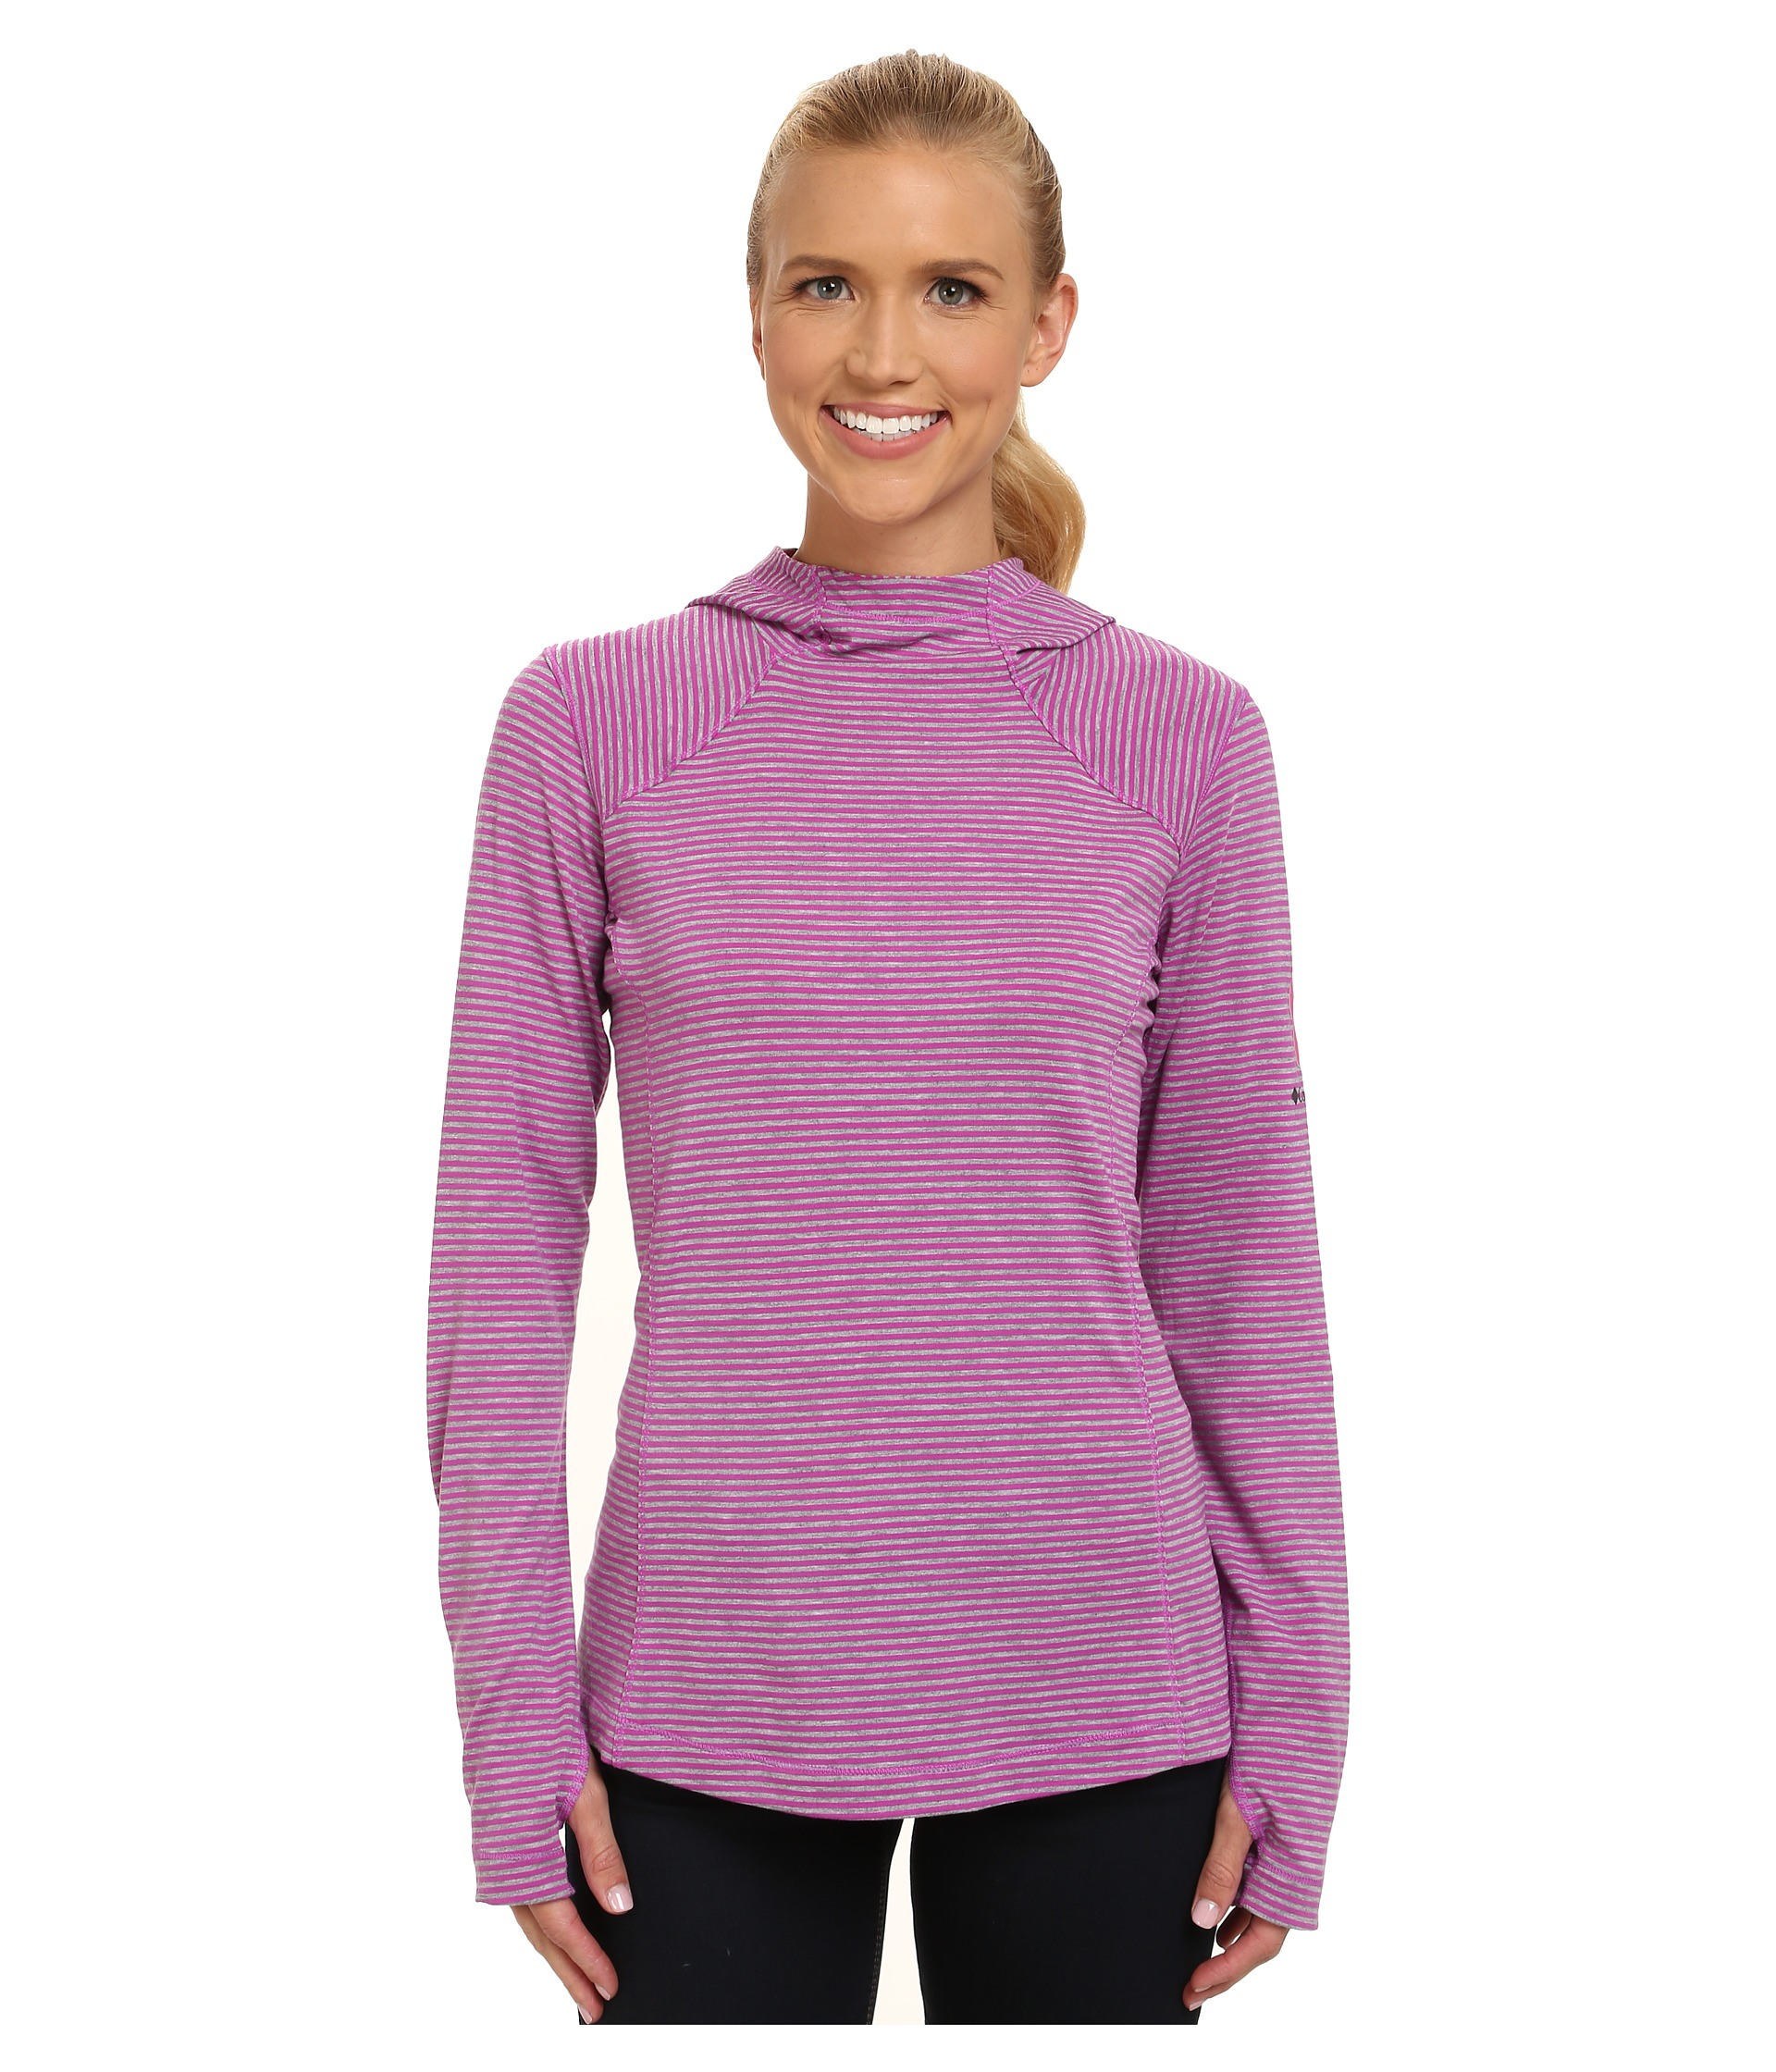 ca17679accd Columbia Tested Tough in Pink™ Layer First Hoodie Foxglove Heathered Stripe